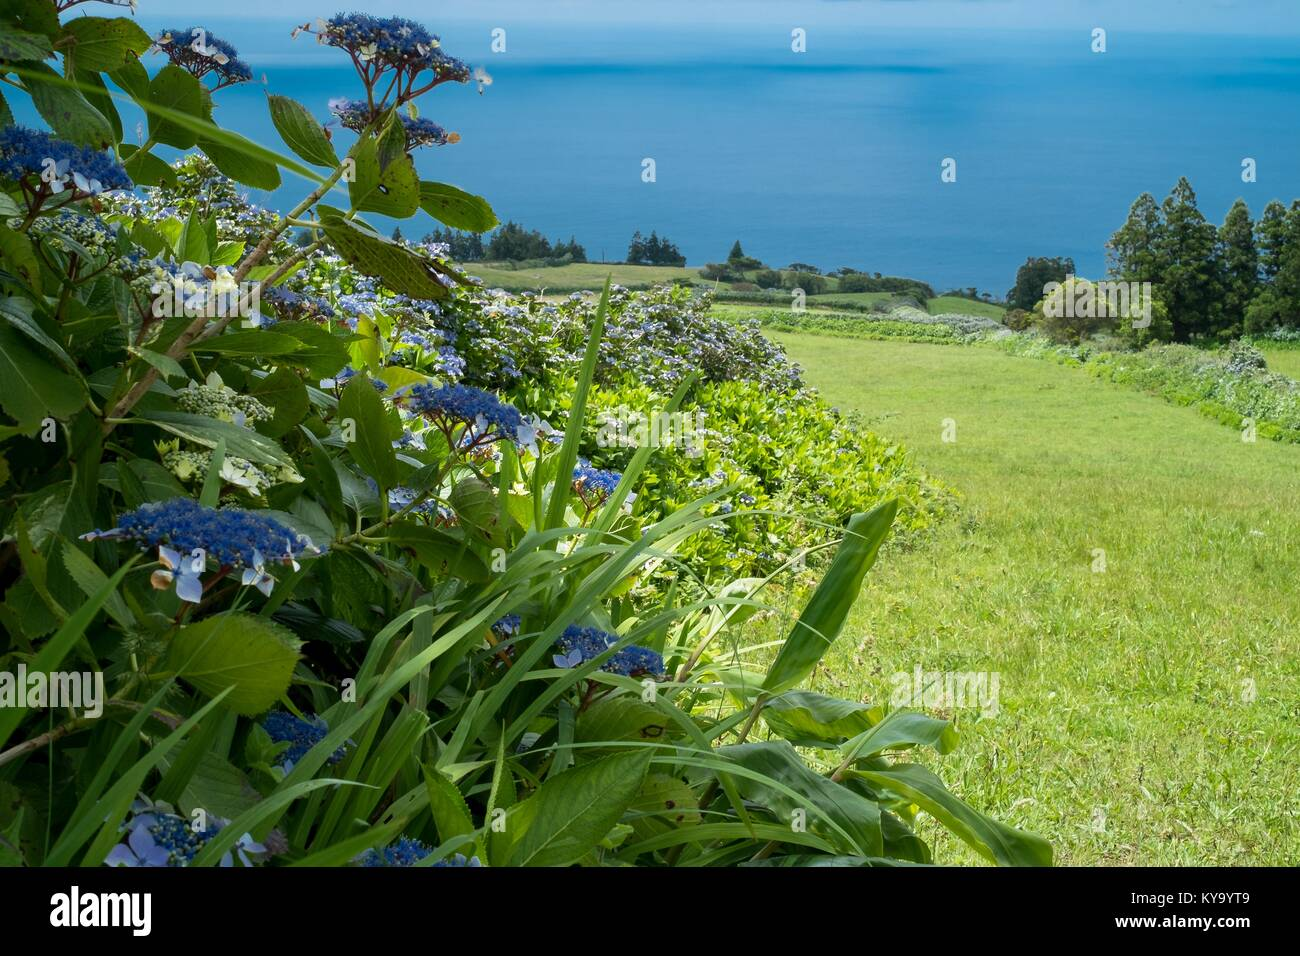 Hydrangea hedgerows on Faial island - Stock Image